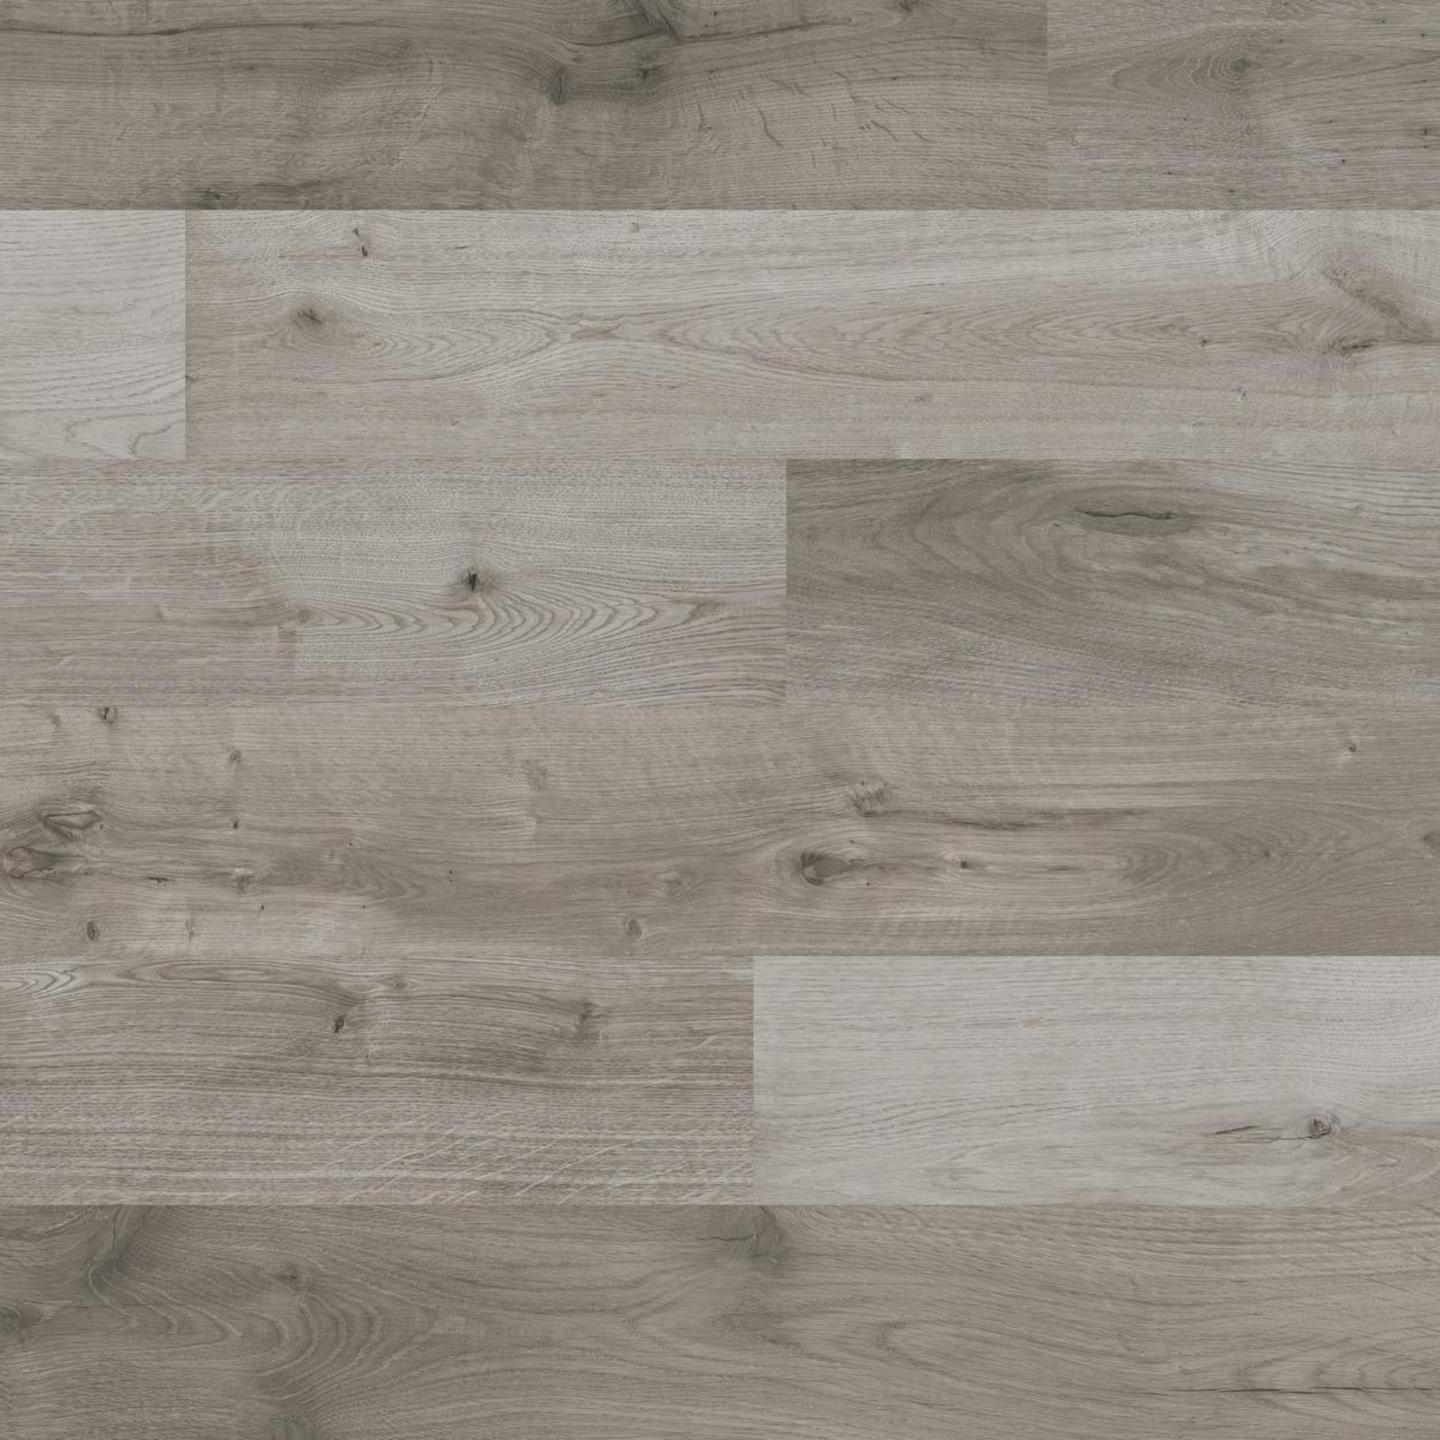 Layed area wood floor Veneer Parquet O523 Oak Naverina LM